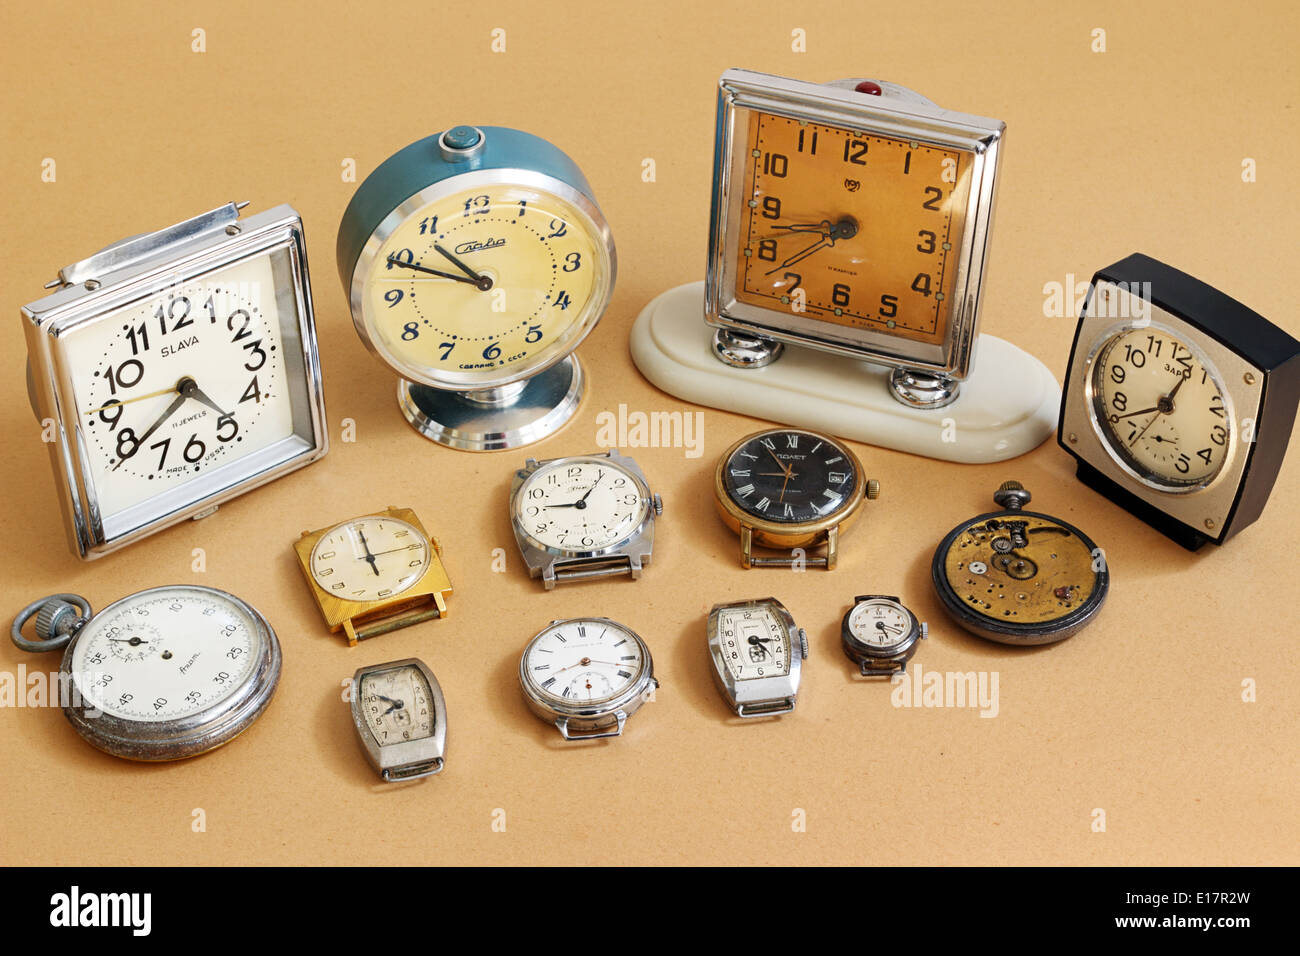 Retro Alarm Clocks And Watches Soviet Alarm Clocks And